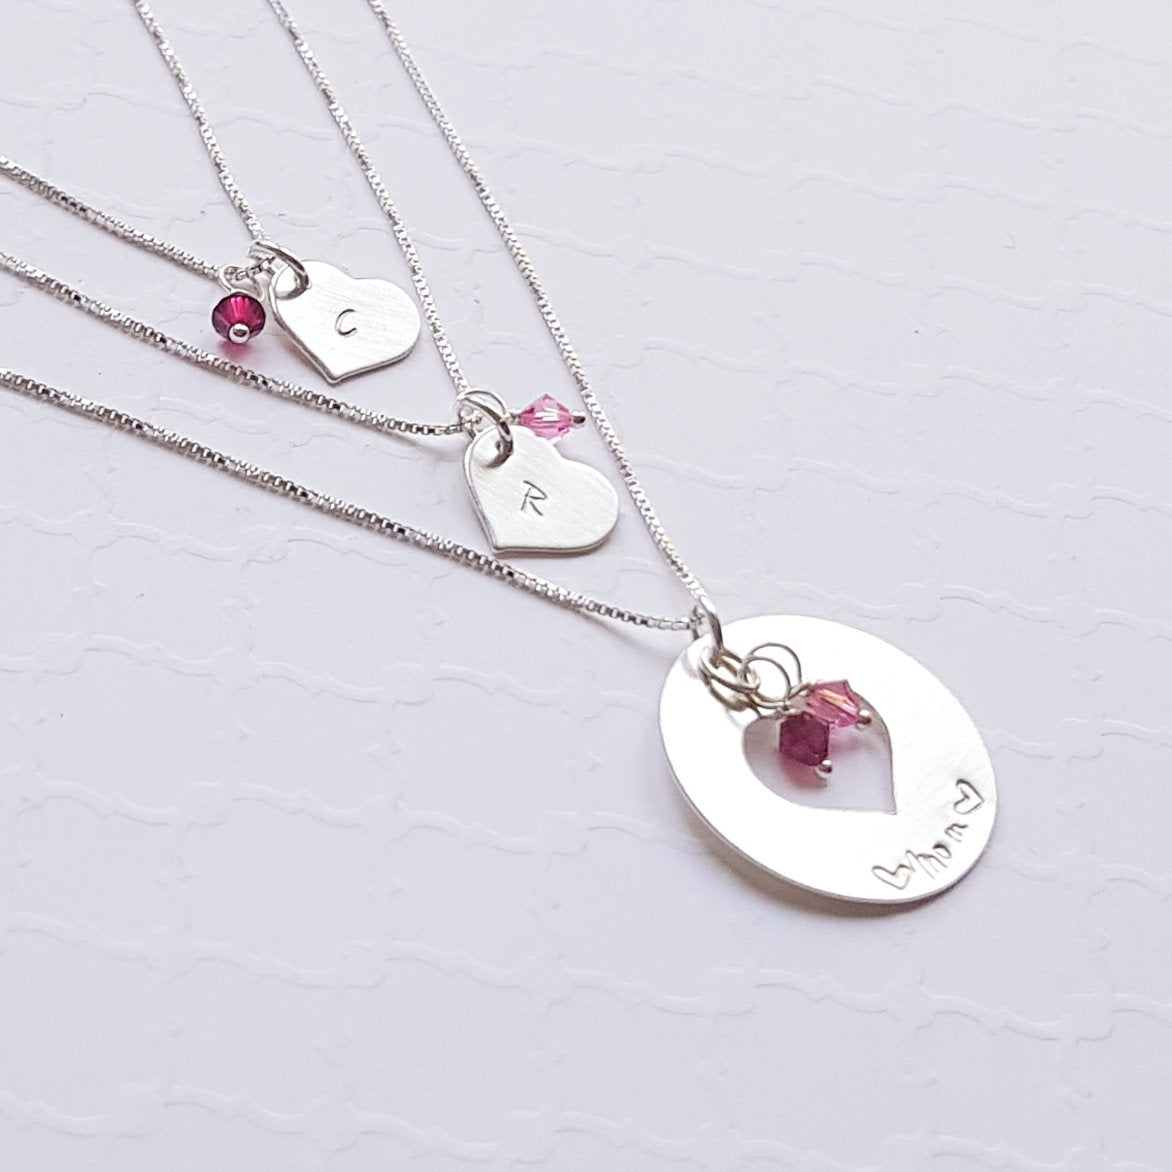 mom-daughter sterling silver cut-out necklace set with birthstones for two daughters